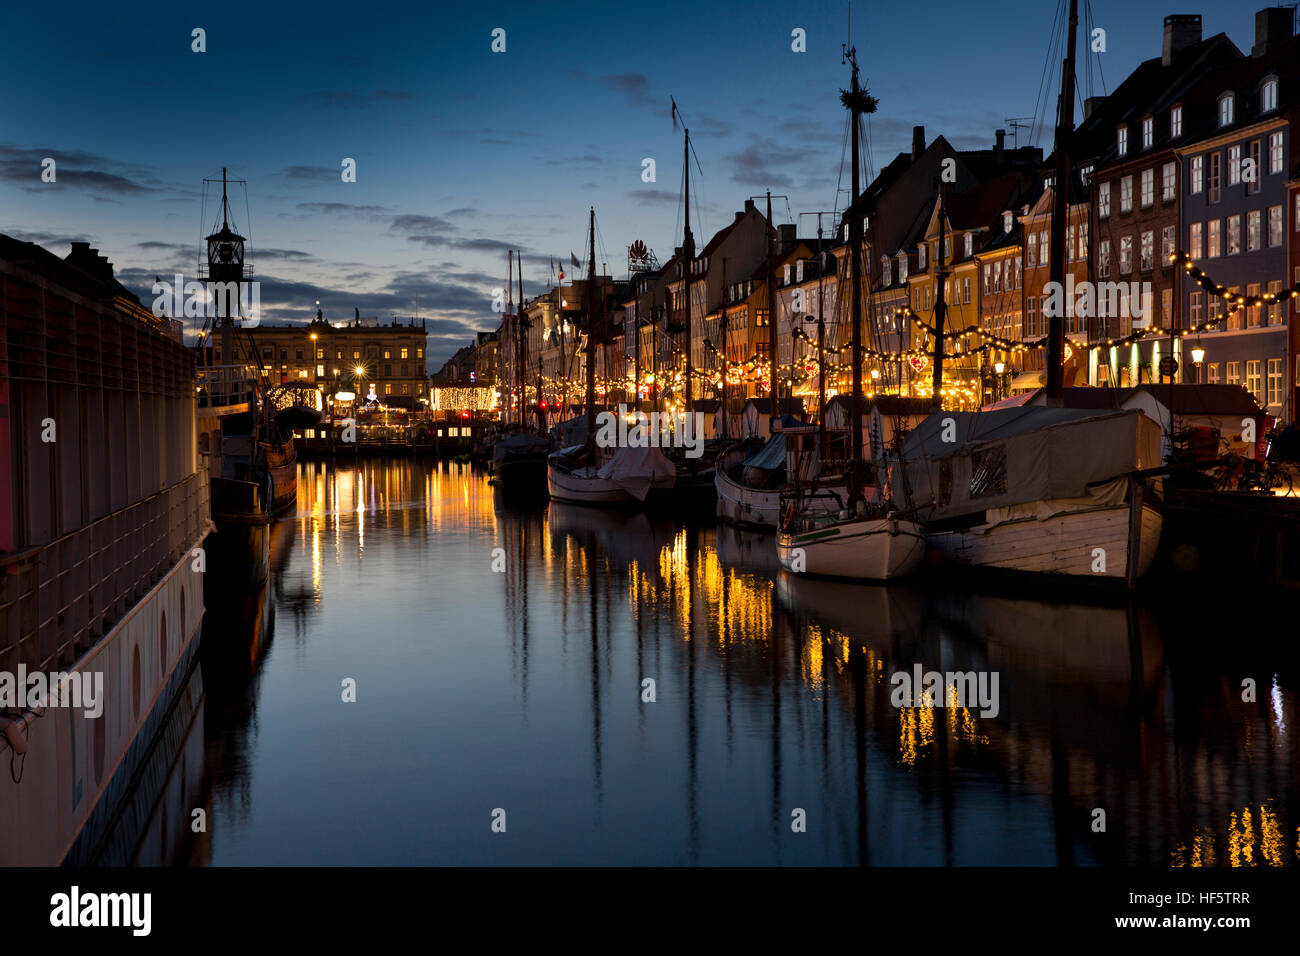 Denmark, Copenhagen, Nyhavn, winter, boats moored at quayside at night, reflected in water - Stock Image